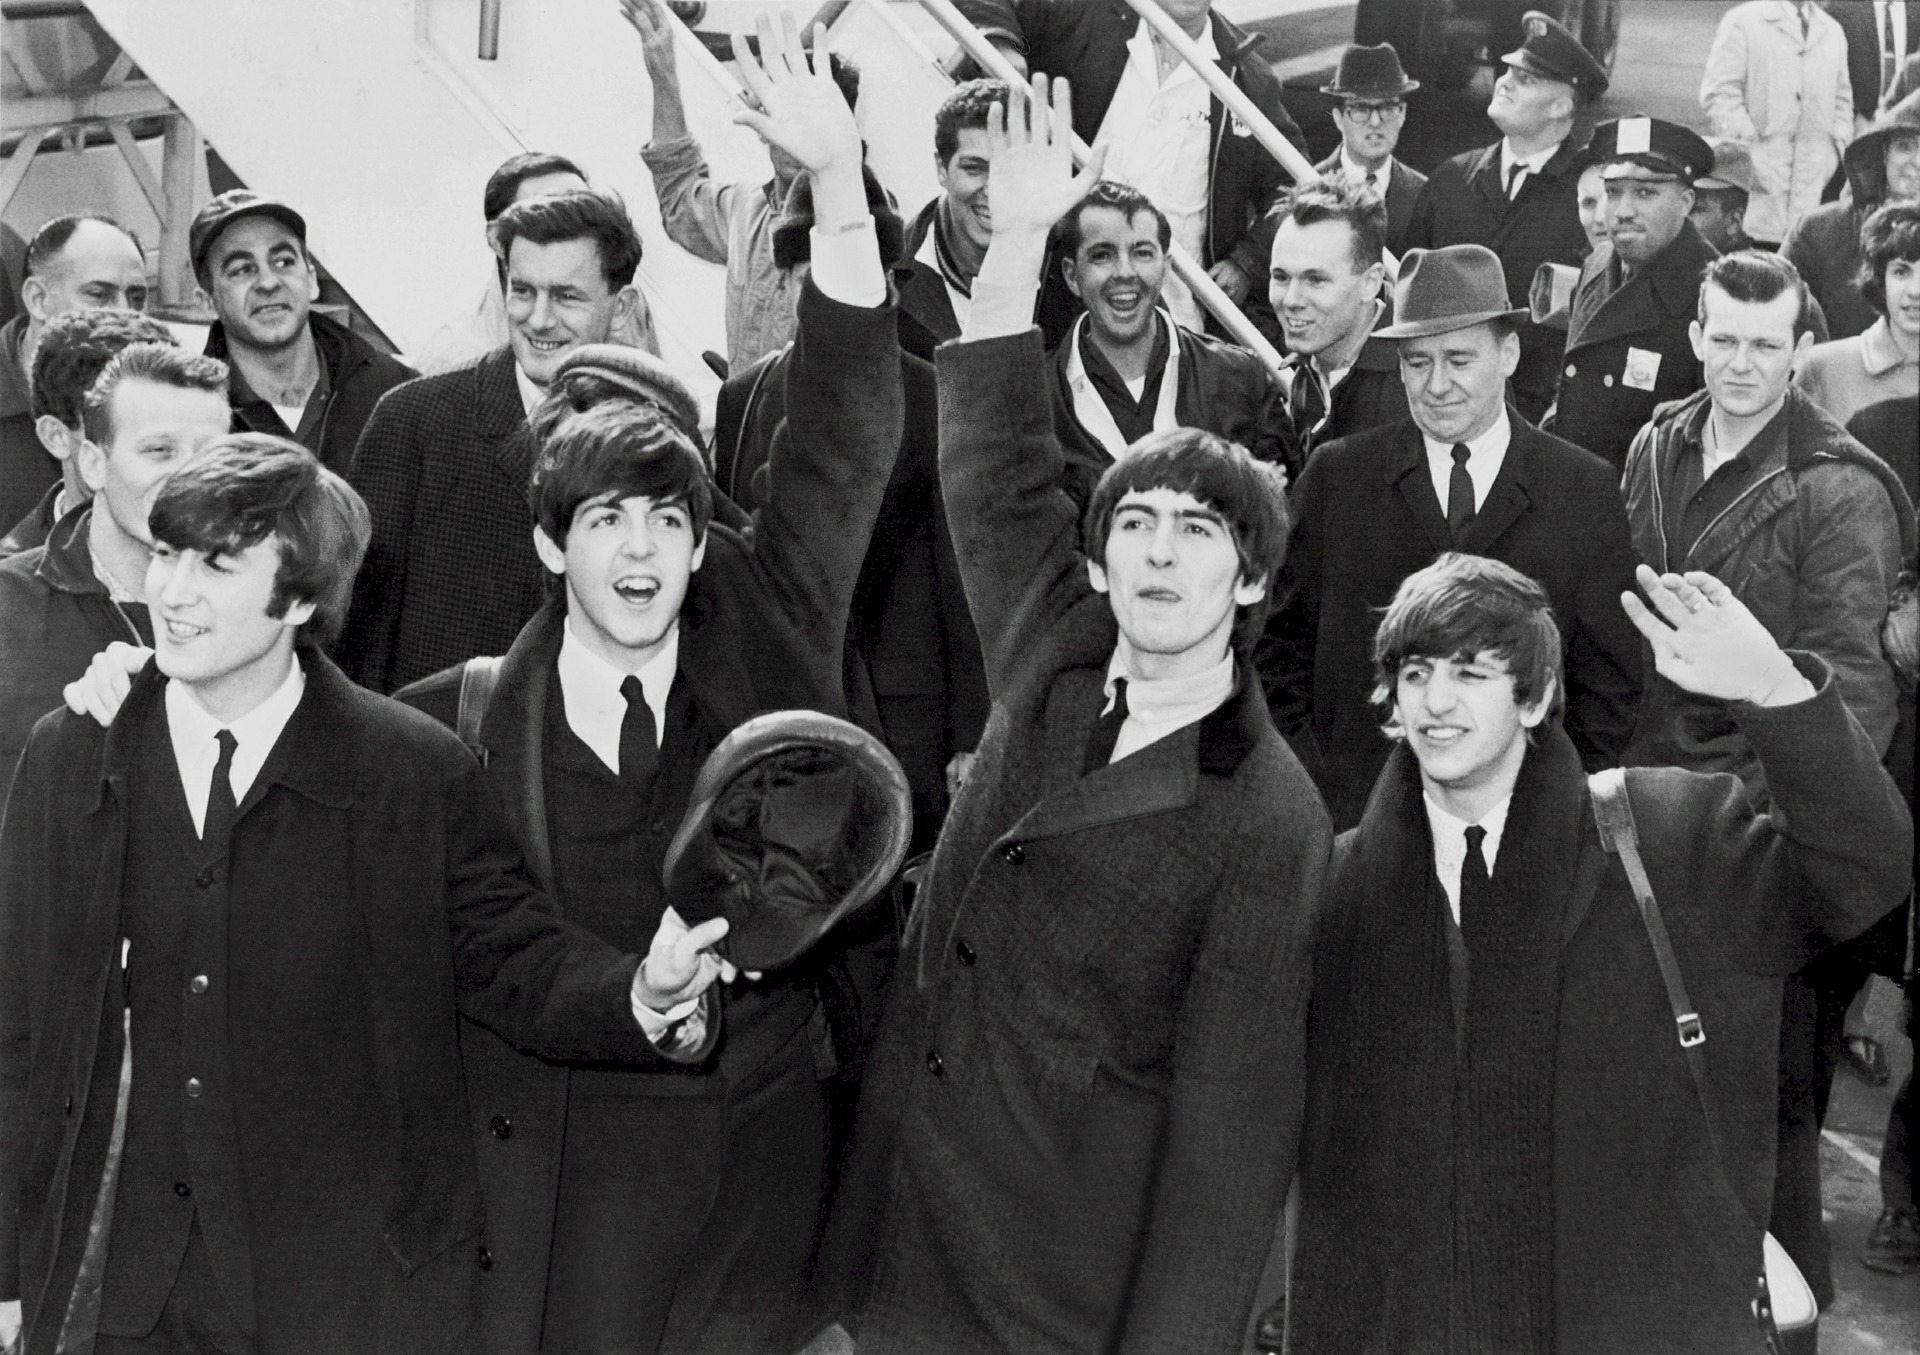 Going on a world-famous Beatles tour is one of the best things to do in Liverpool